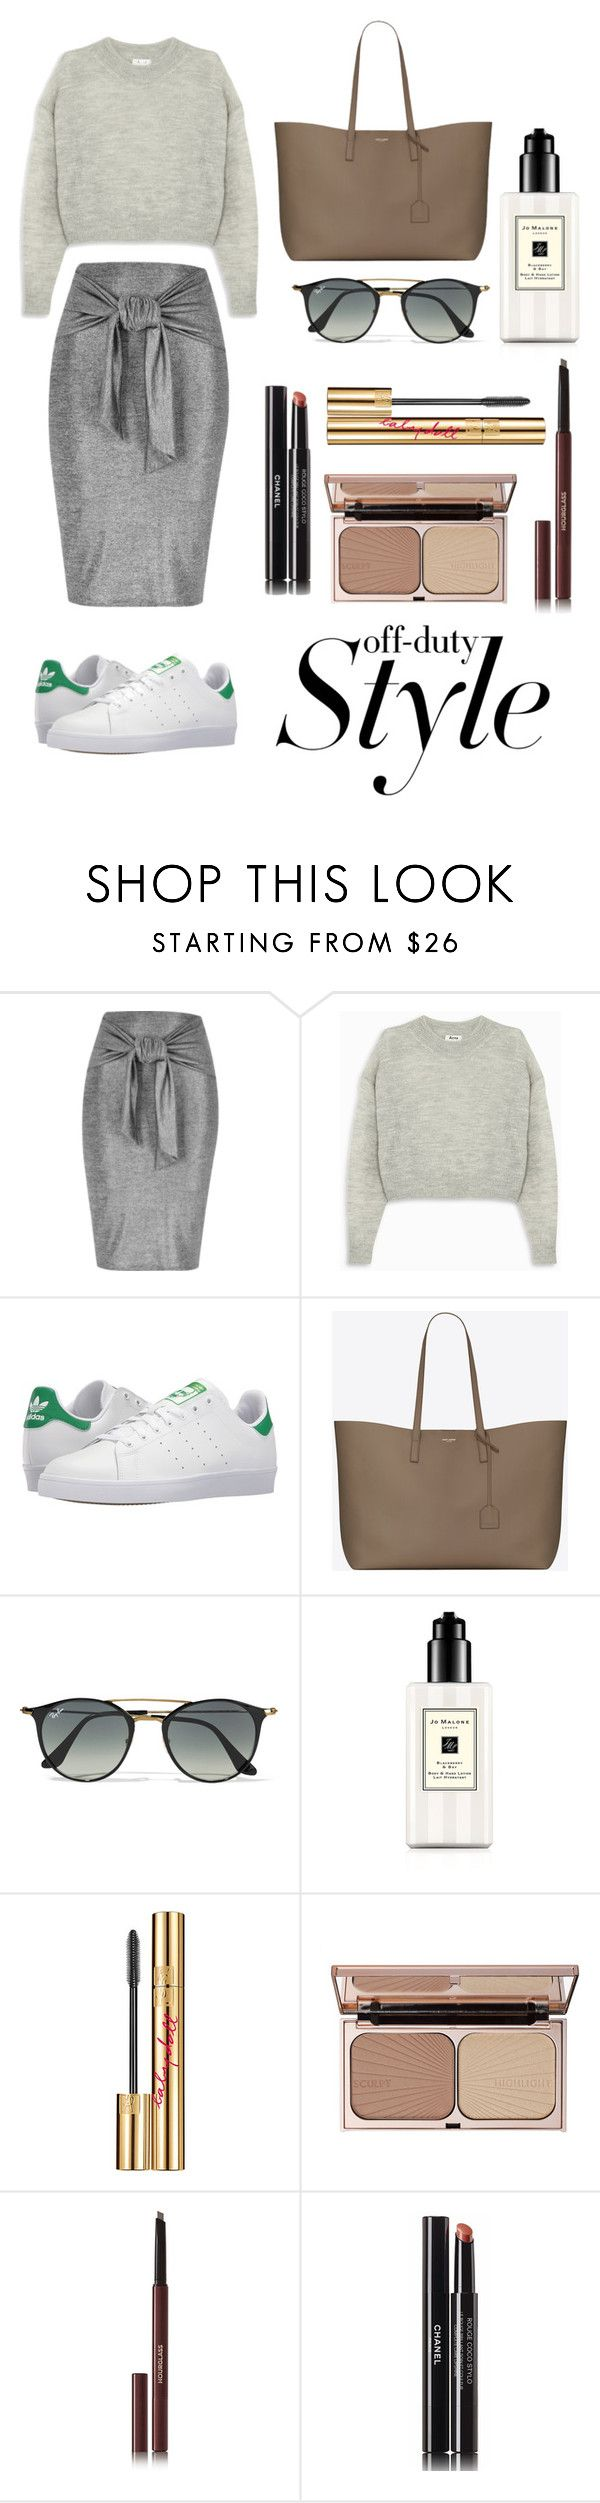 """""""Streetchic"""" by stella-lam ❤ liked on Polyvore featuring River Island, Acne Studios, adidas, Yves Saint Laurent, Ray-Ban, Jo Malone, Charlotte Tilbury and Hourglass Cosmetics"""